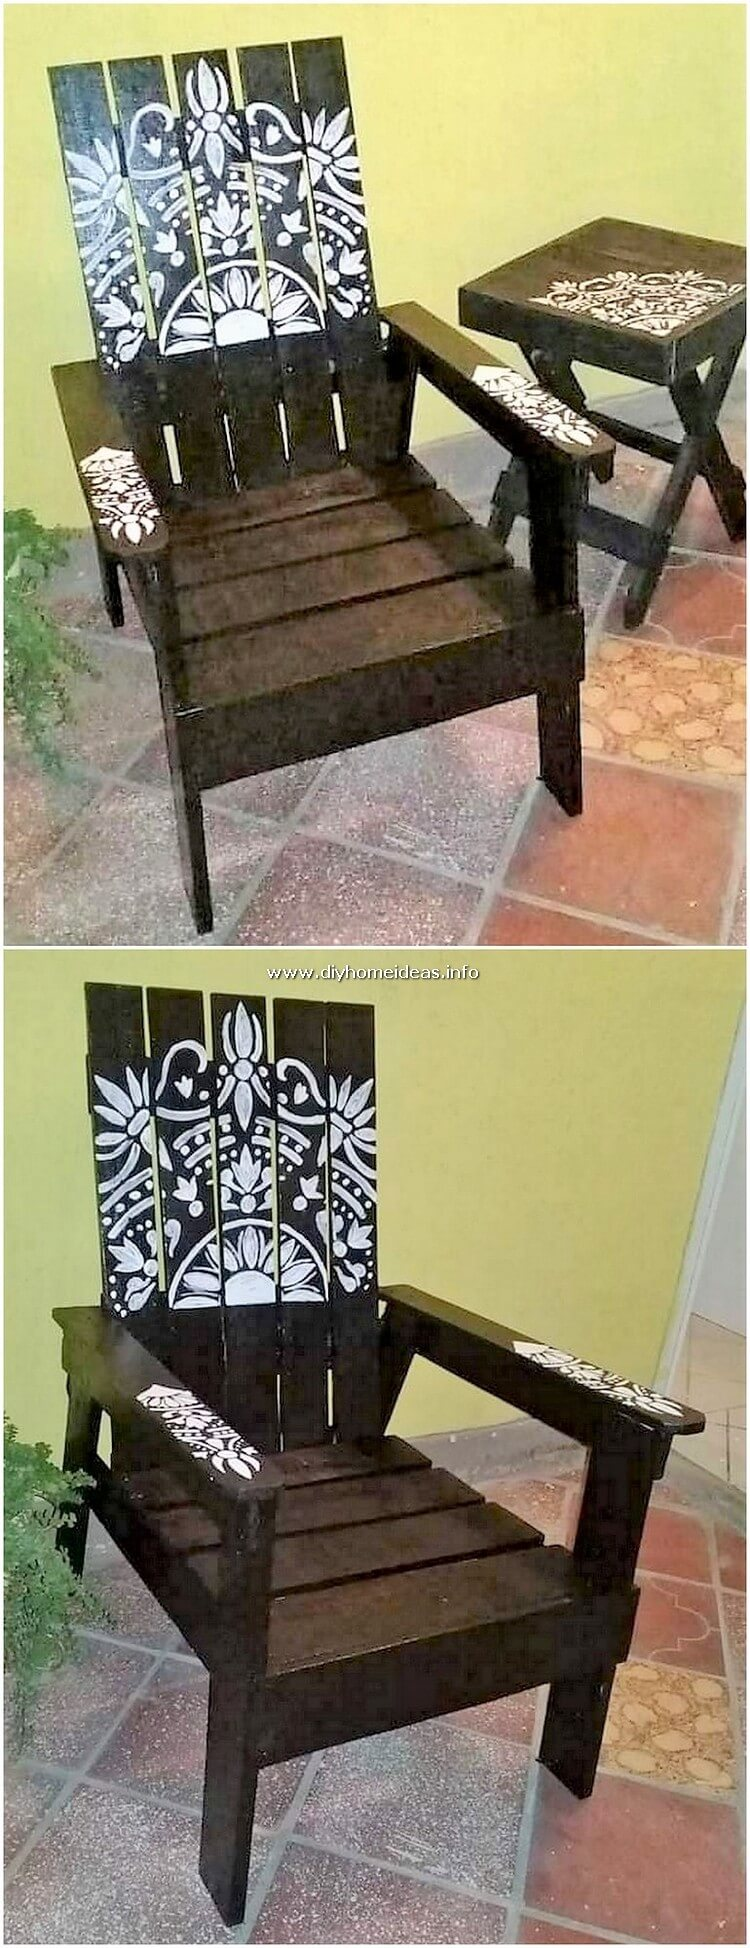 Pallet Chair and Side Table